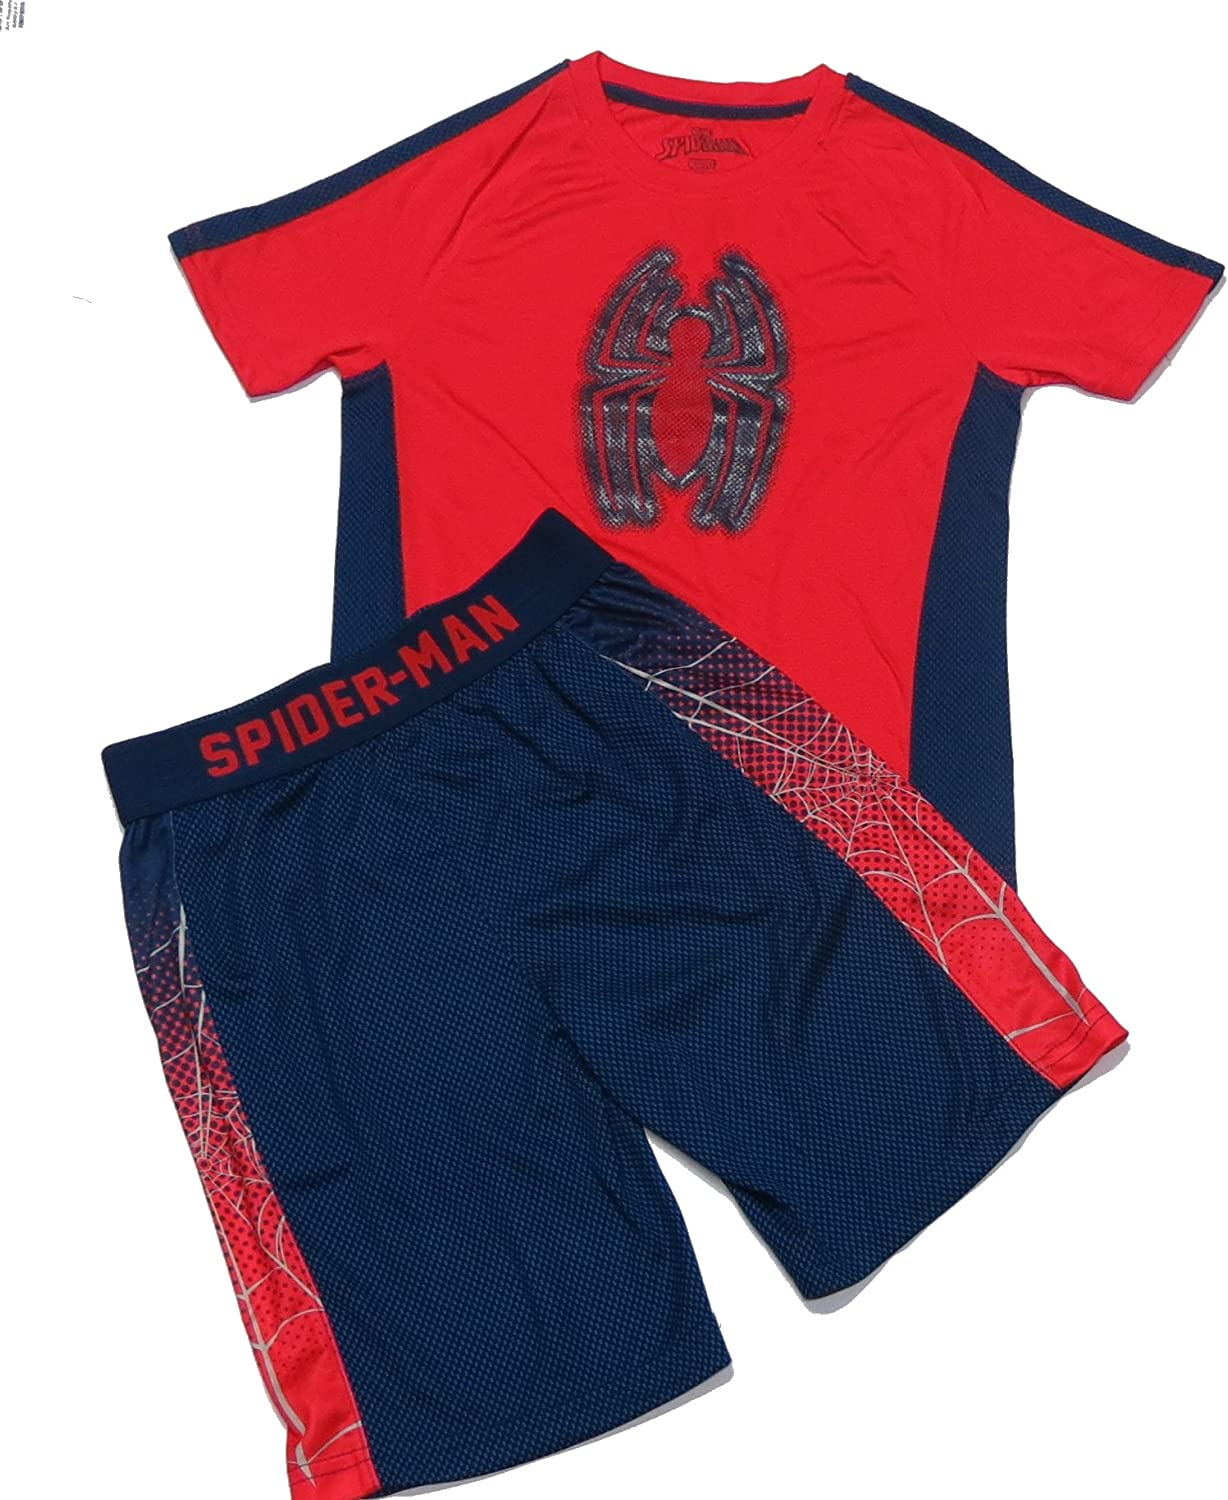 Spider Man Boys Active Poly T-Shirt /& Boys Sold Active Shorts Size 6//7 Red